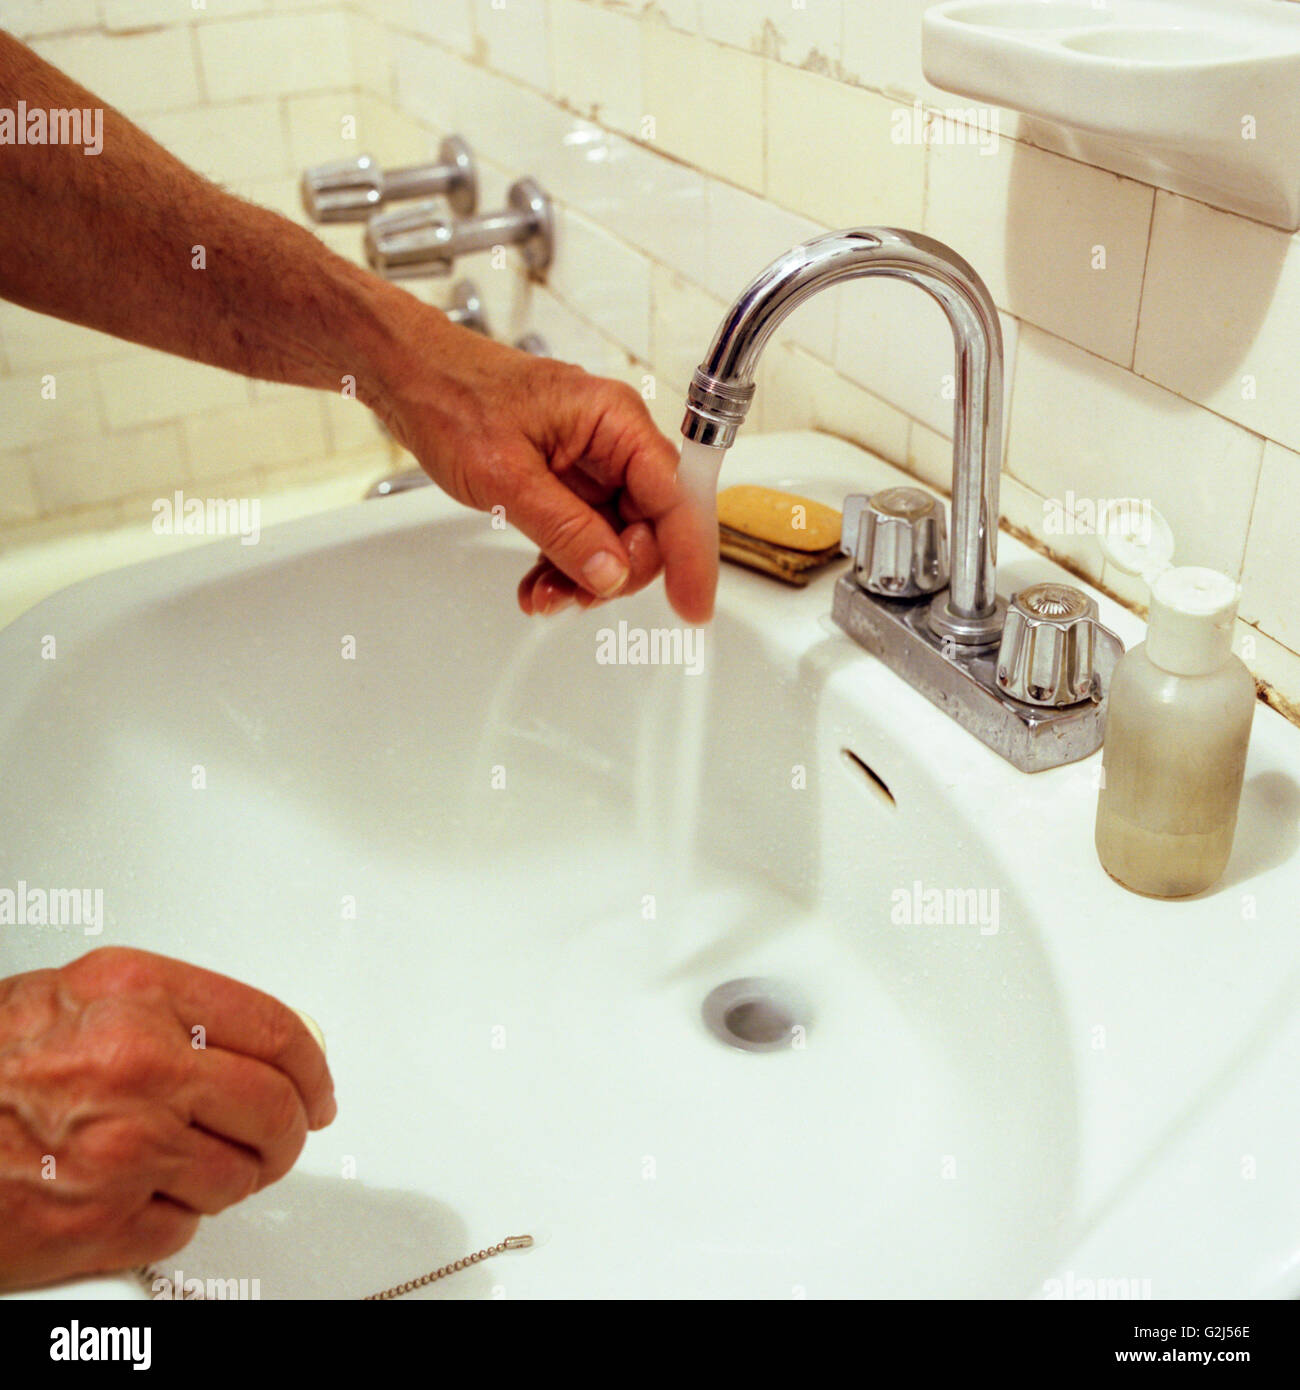 Elderly Man Testing Water Temperature From Sink Stock Photo Alamy